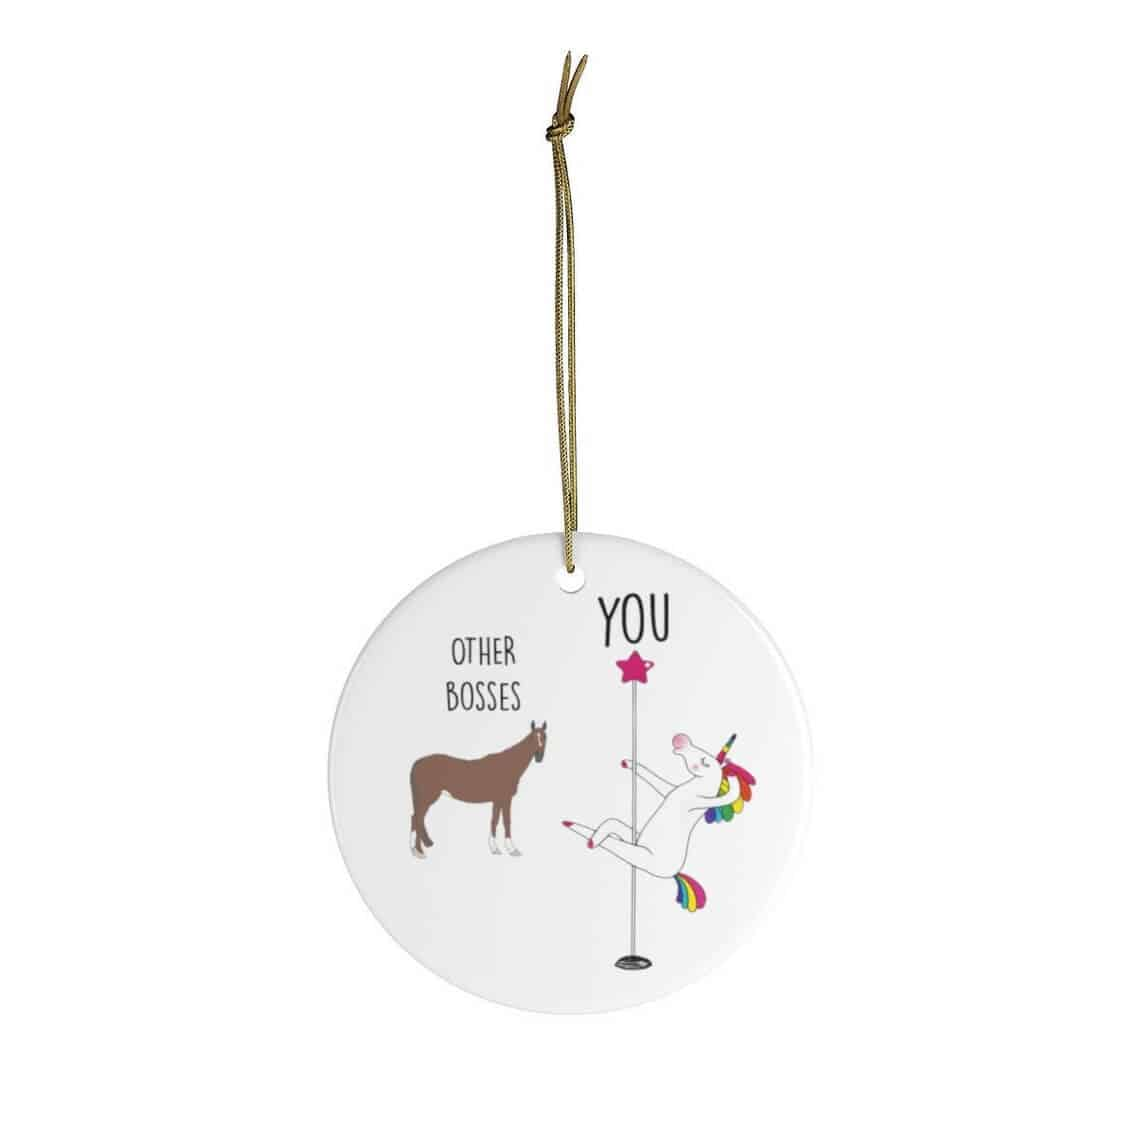 a unicorn pole dancing ornament - funny gifts for female boss